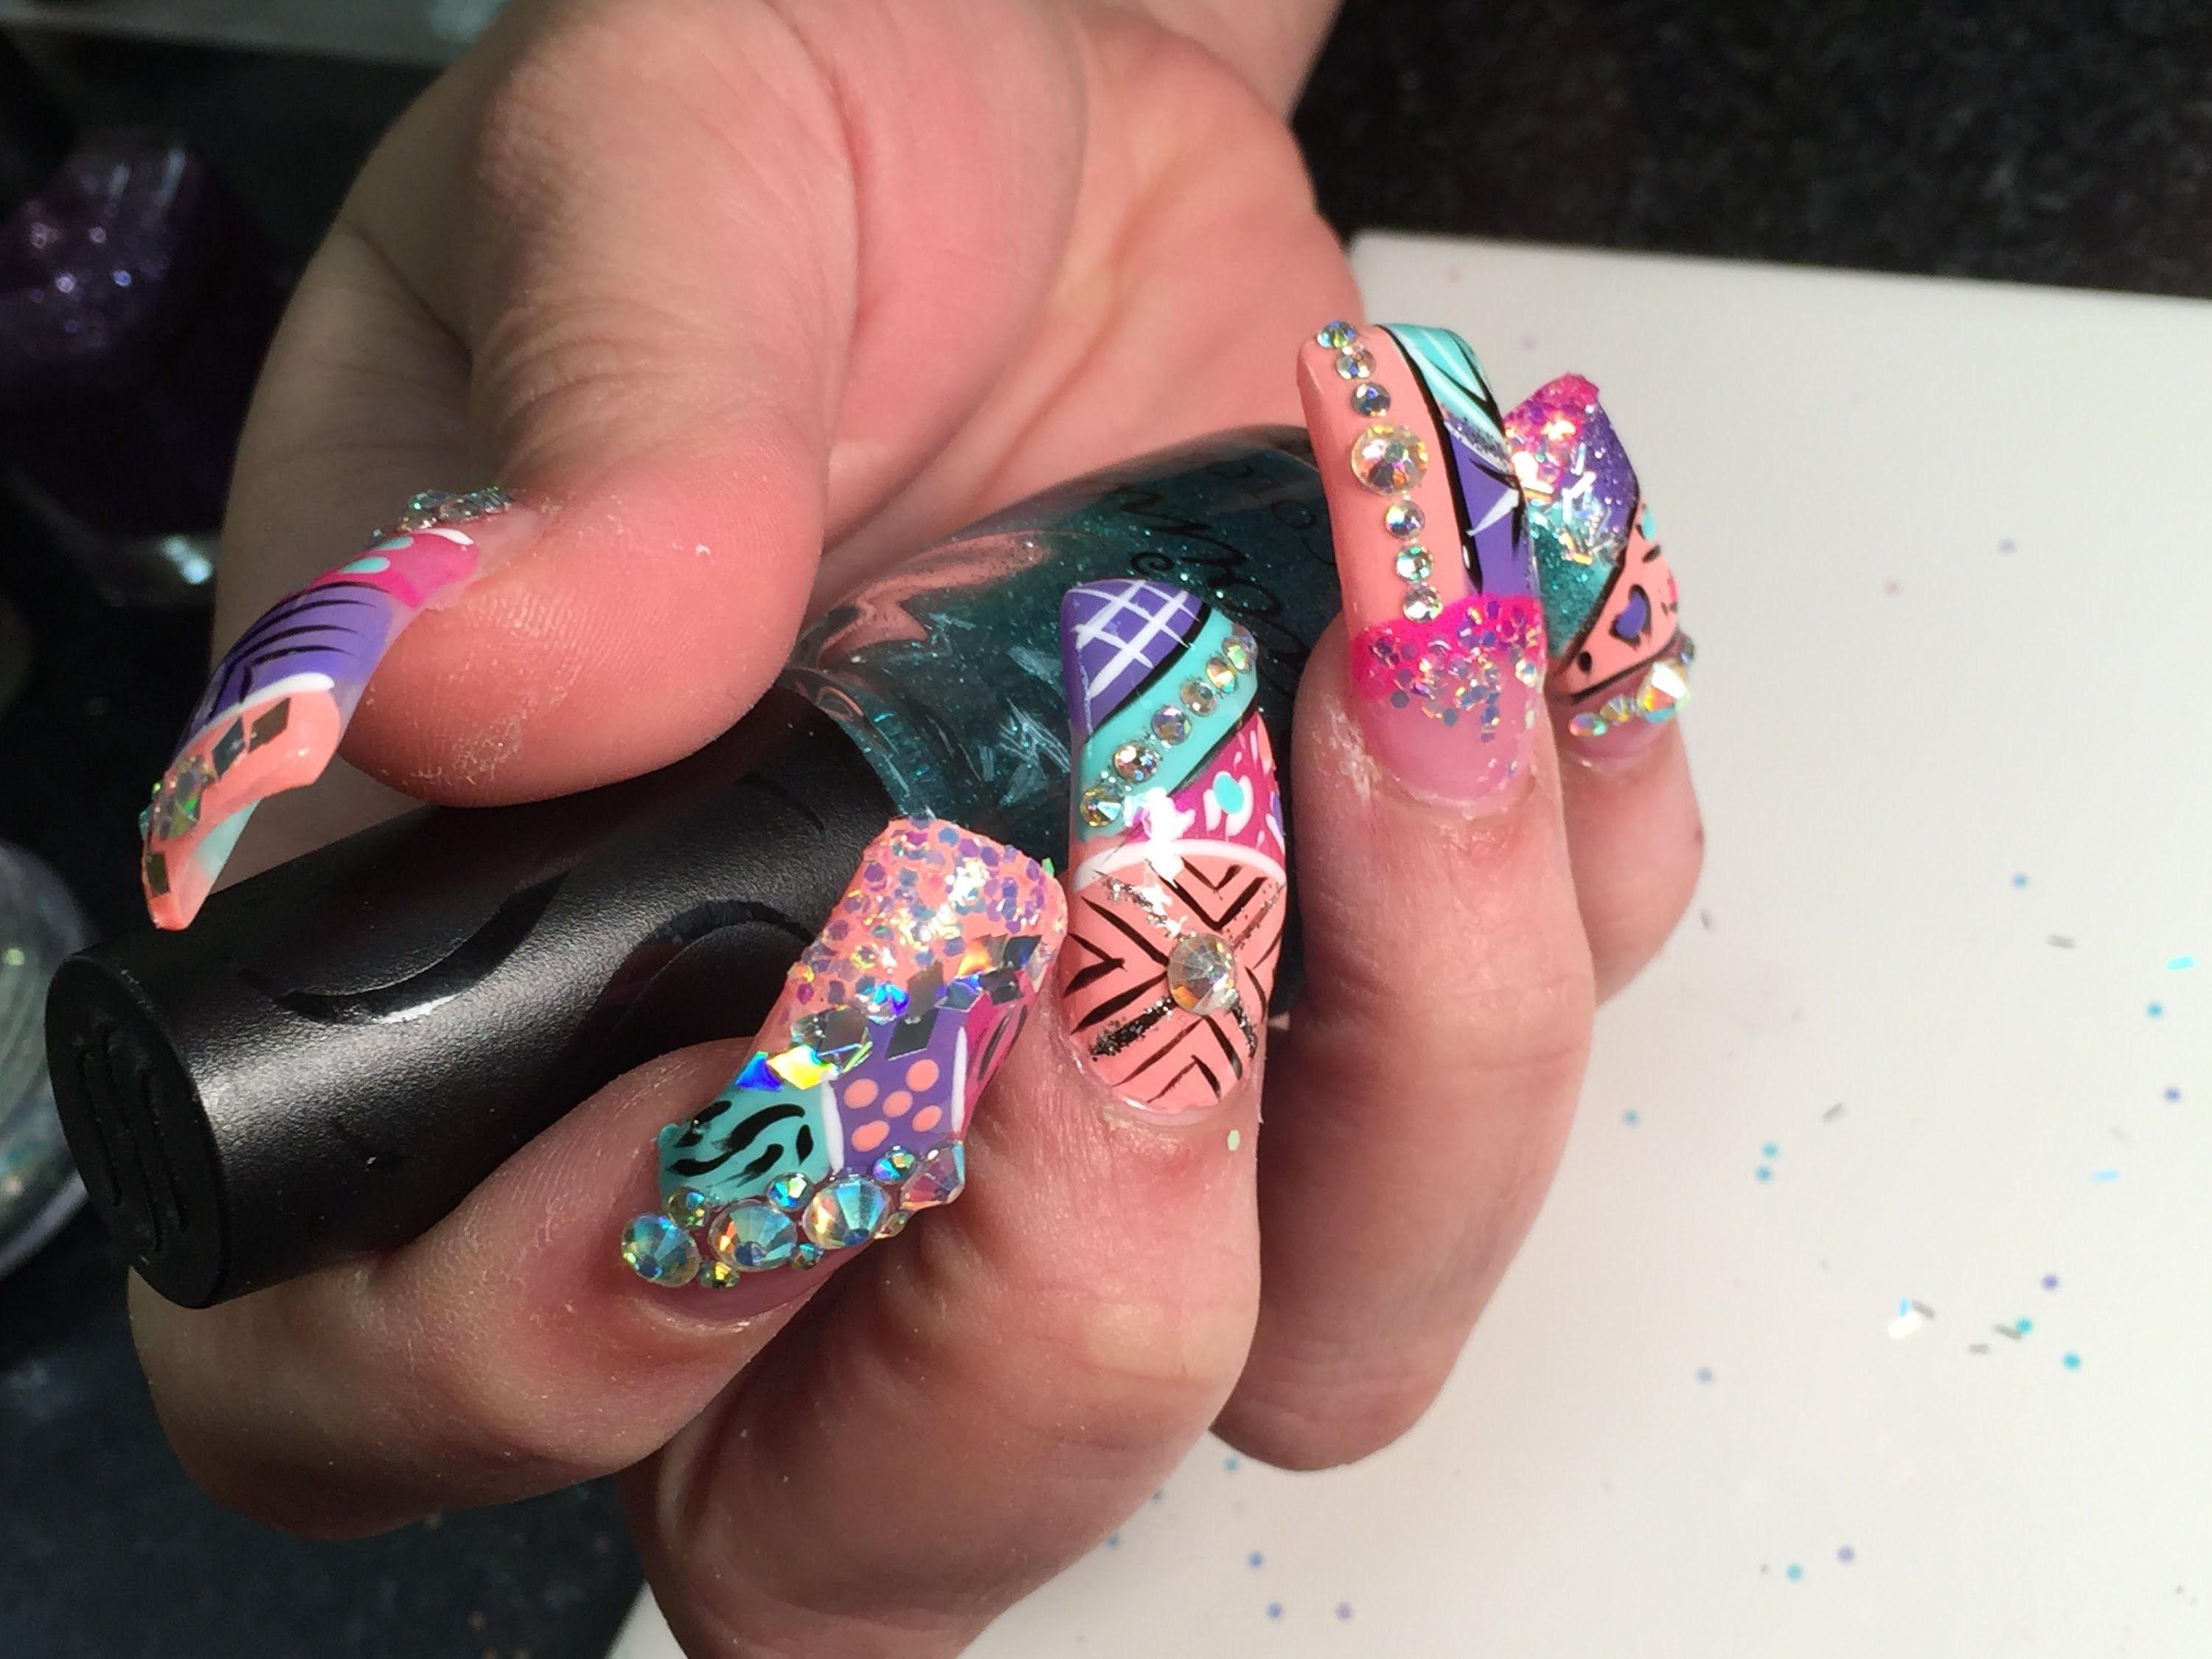 Super long acrylic nails with exotic nails design 2015 part 3 end super long acrylic nails with exotic nails design 2015 part 3 end prinsesfo Gallery